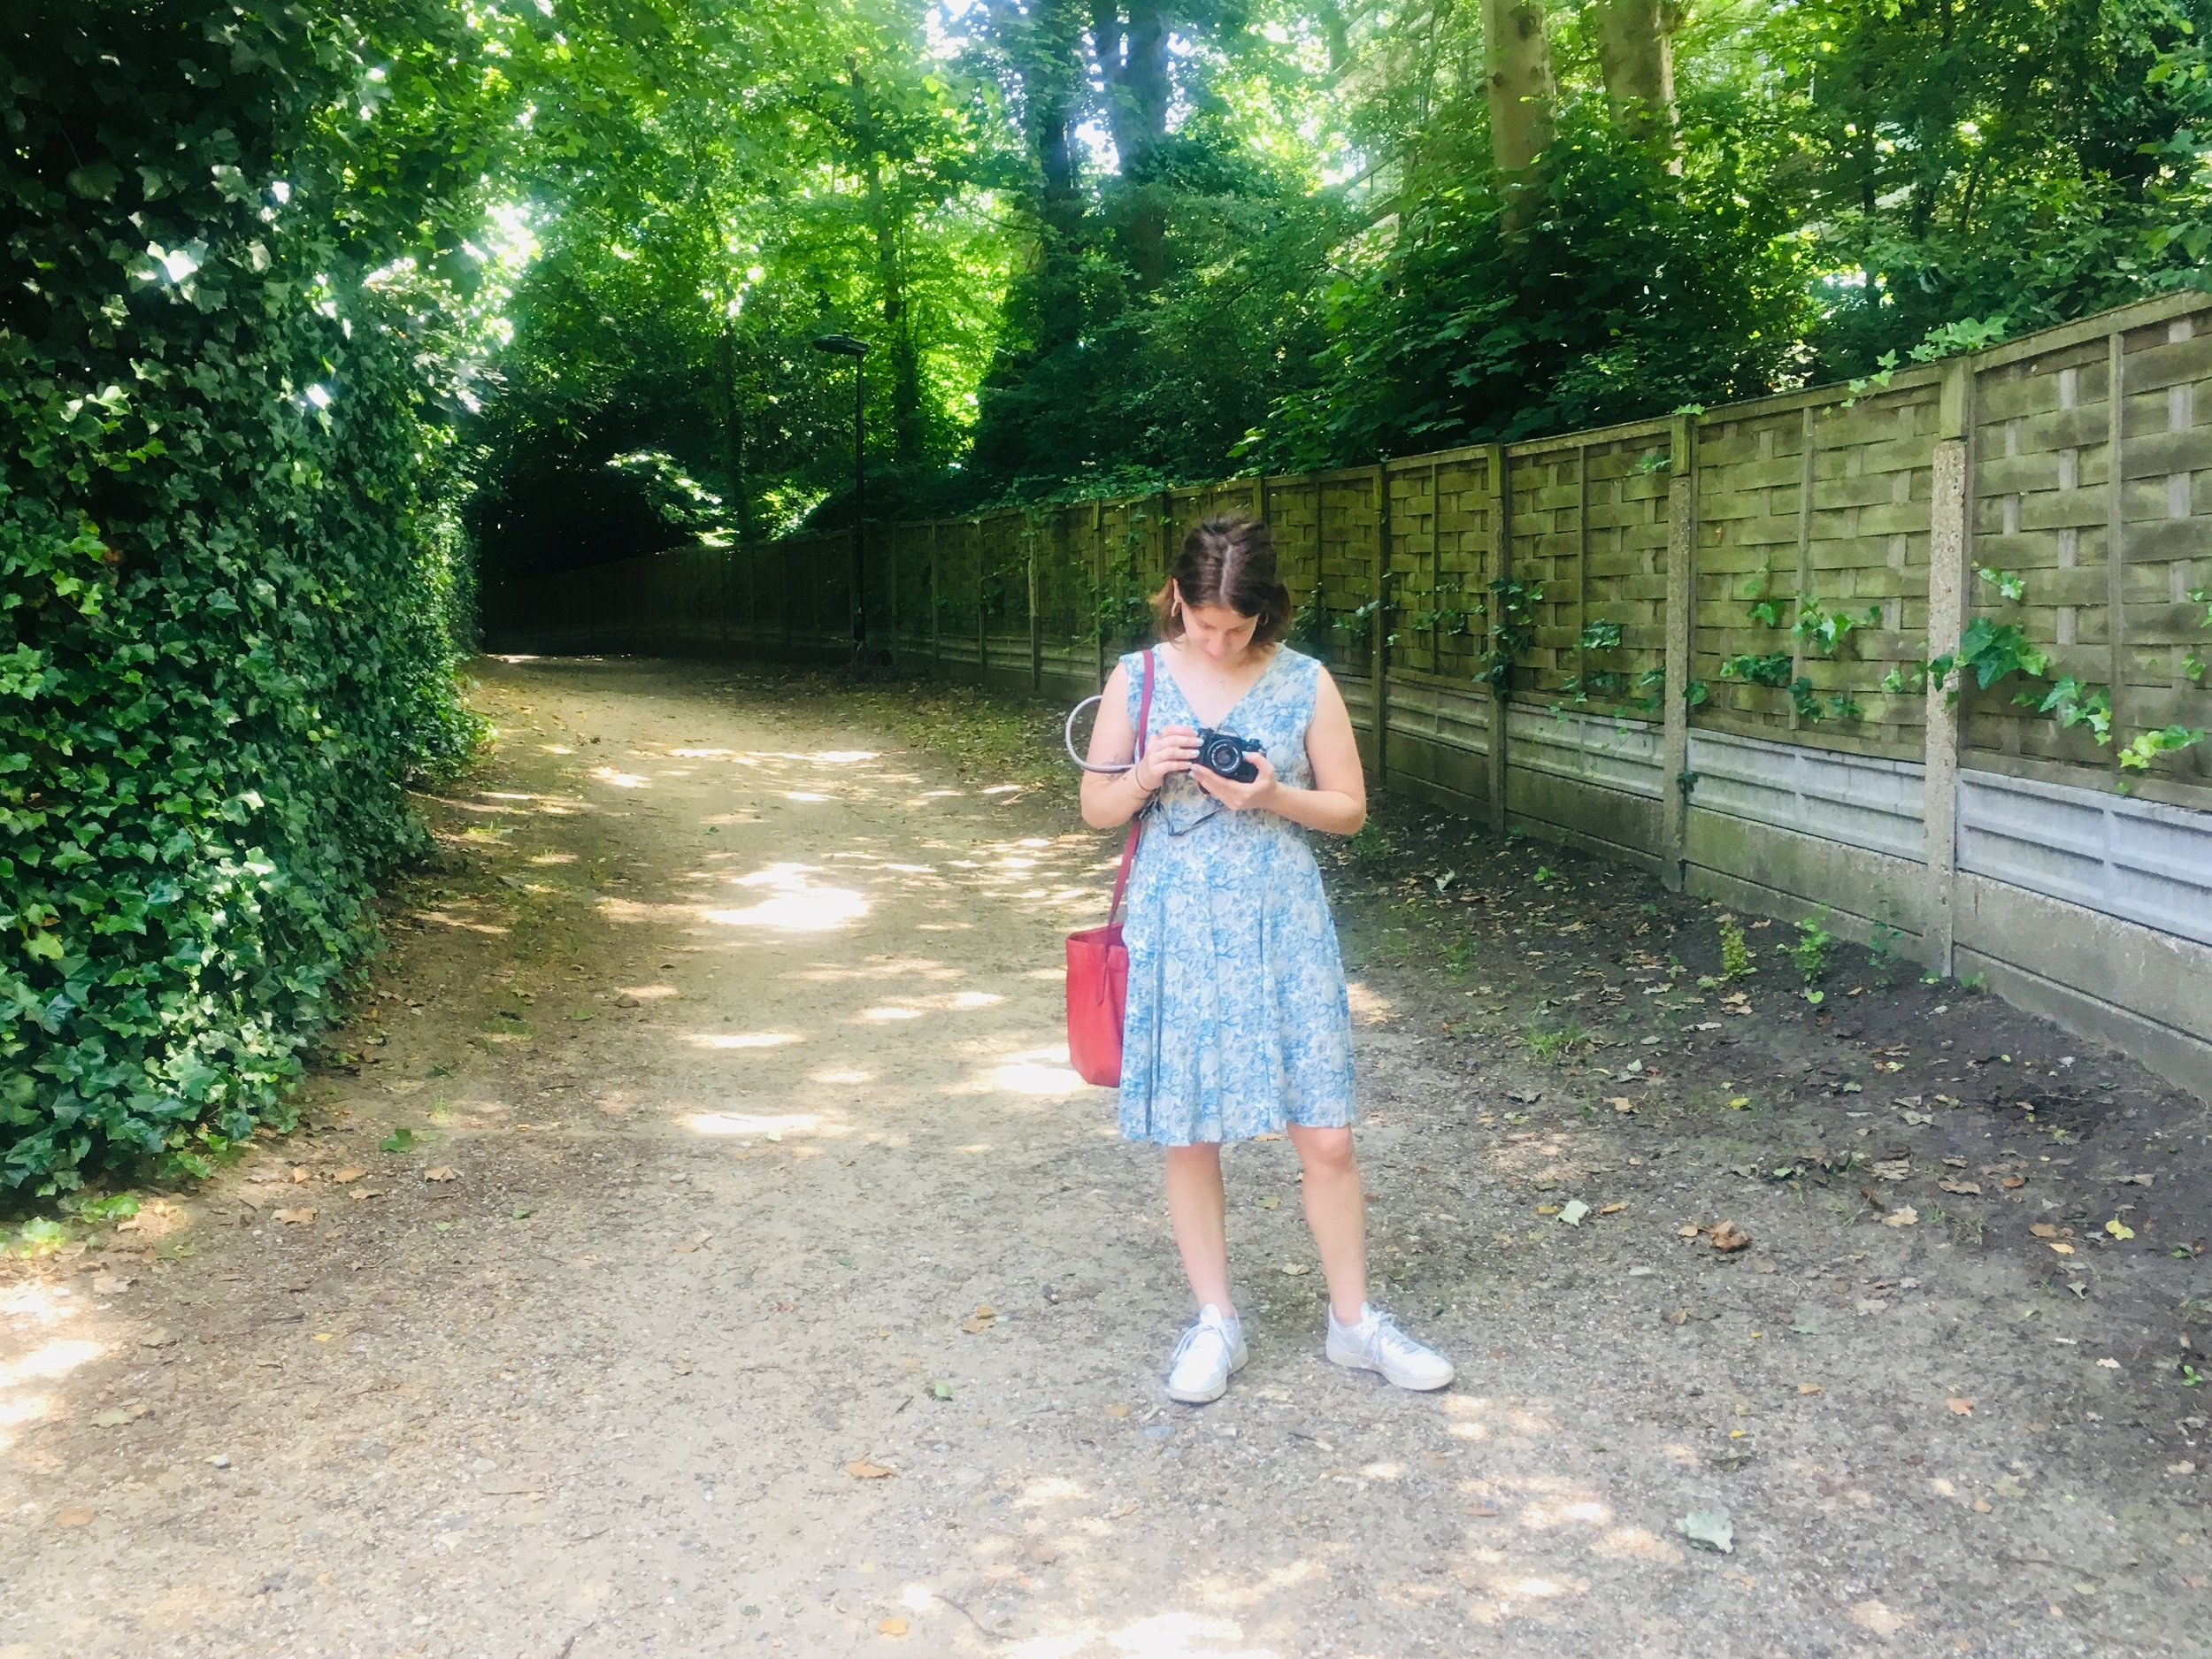 My sister on the road to Hampstead's town center